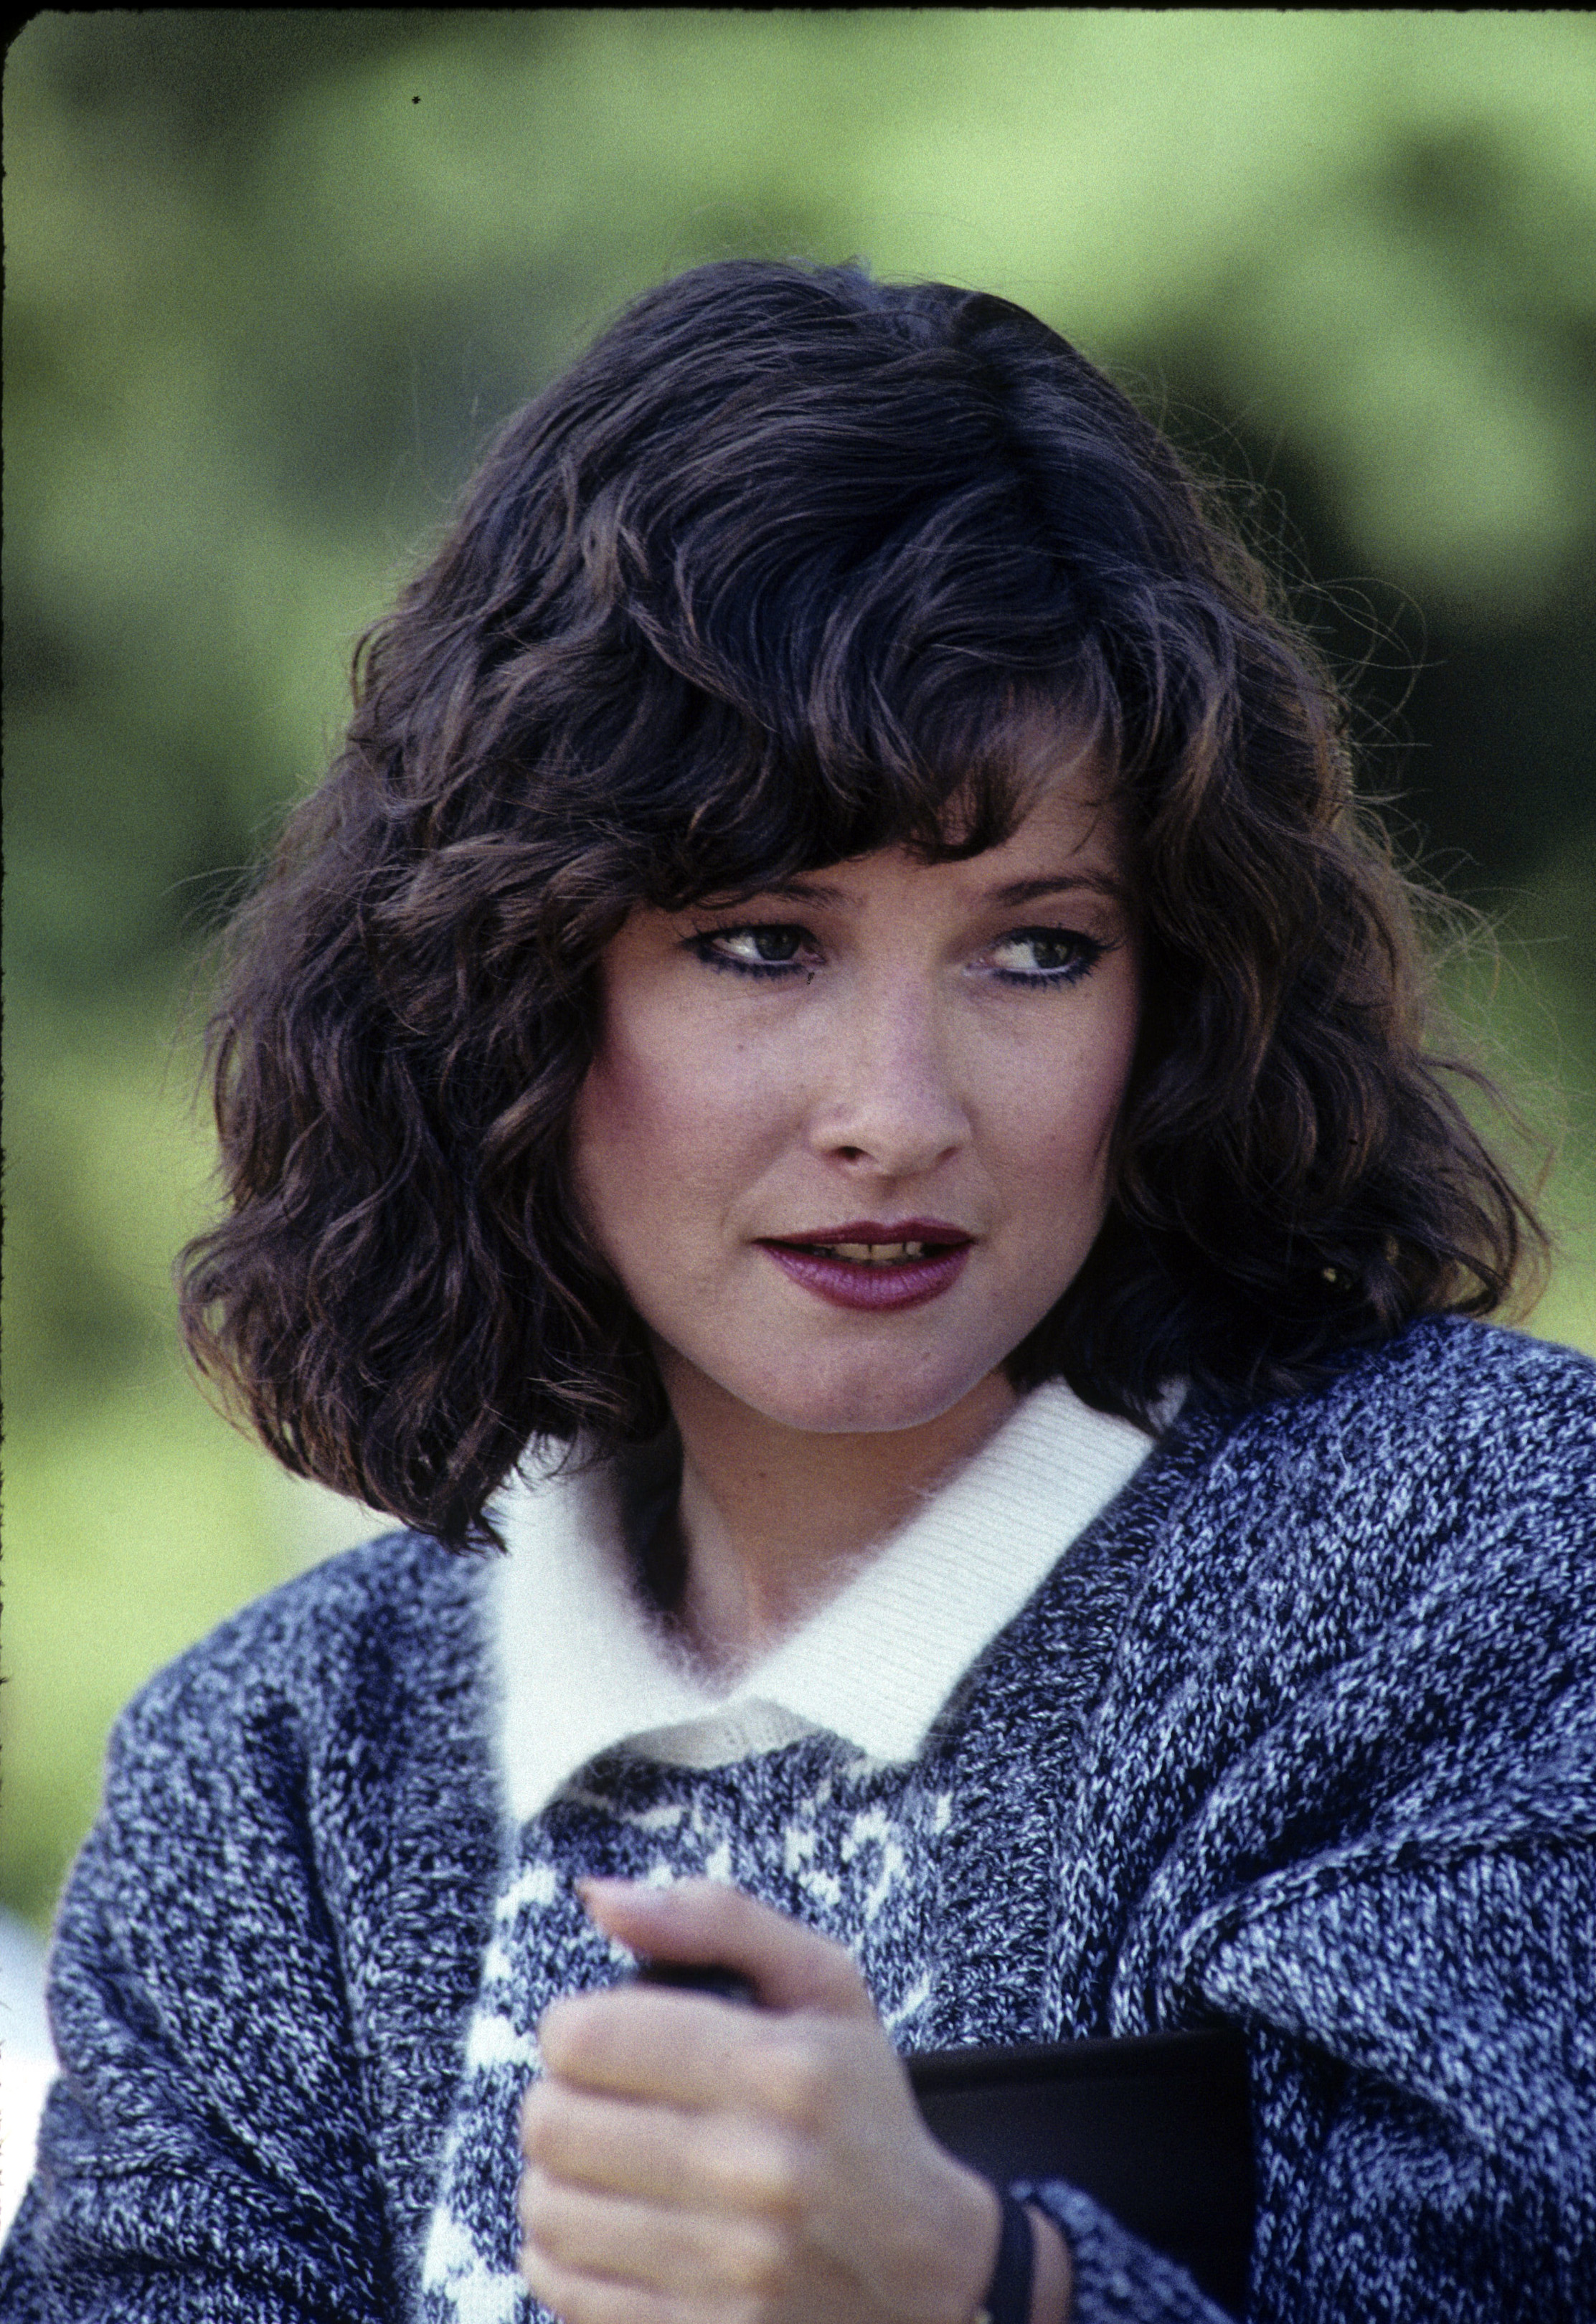 A picture of Elyssa Davalos in her youth. She is wearing a grey coat and has short, wavy hair